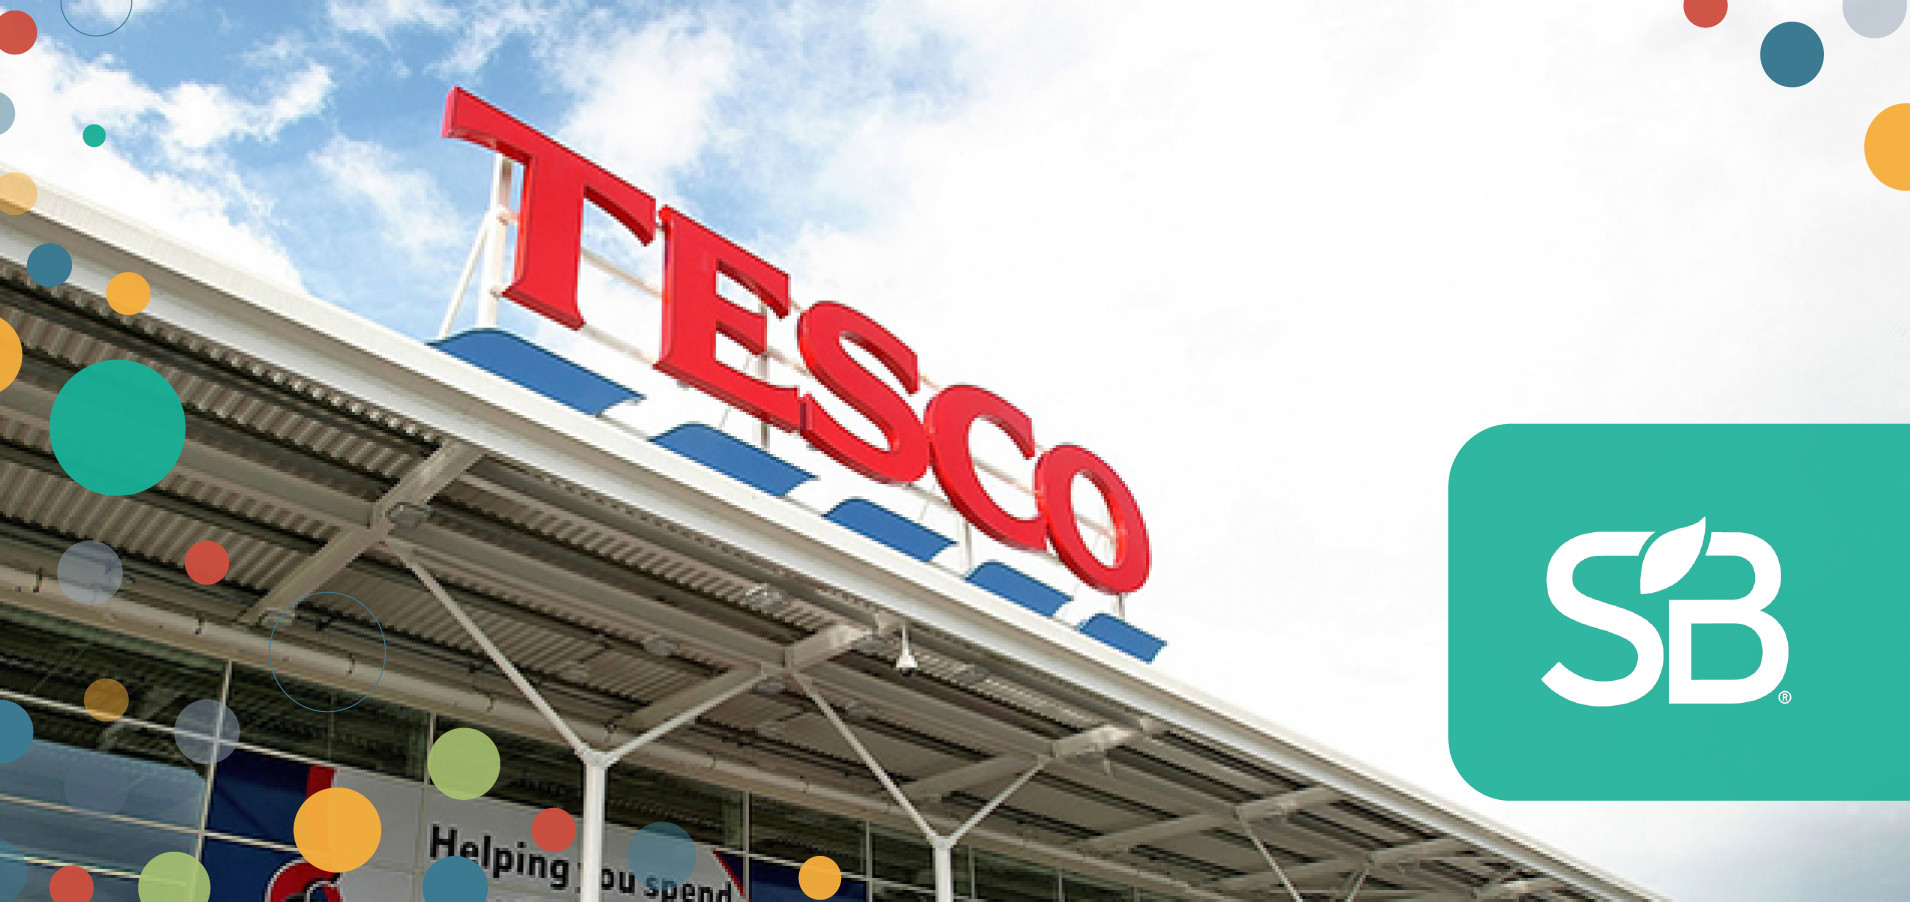 760e6c4a64f6 Tesco Reveals New Plans to Axe Toxic Chemicals, Slash Building Emissions -  Sustainable Brands